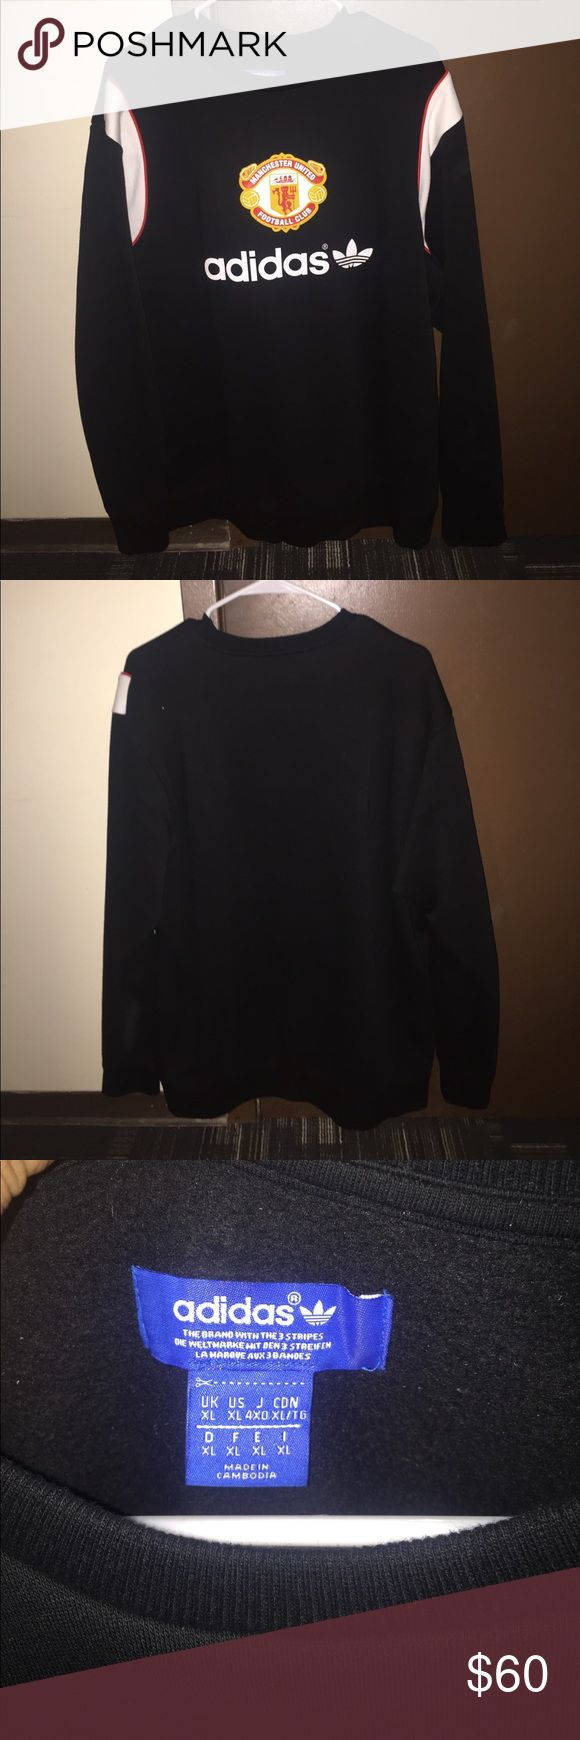 Adidas Manchester United sweatshirt Brand new, wore it once, Got it from soccersavings.com you will not find anywhere else Adidas Shirts Sweatshirts & Hoodies